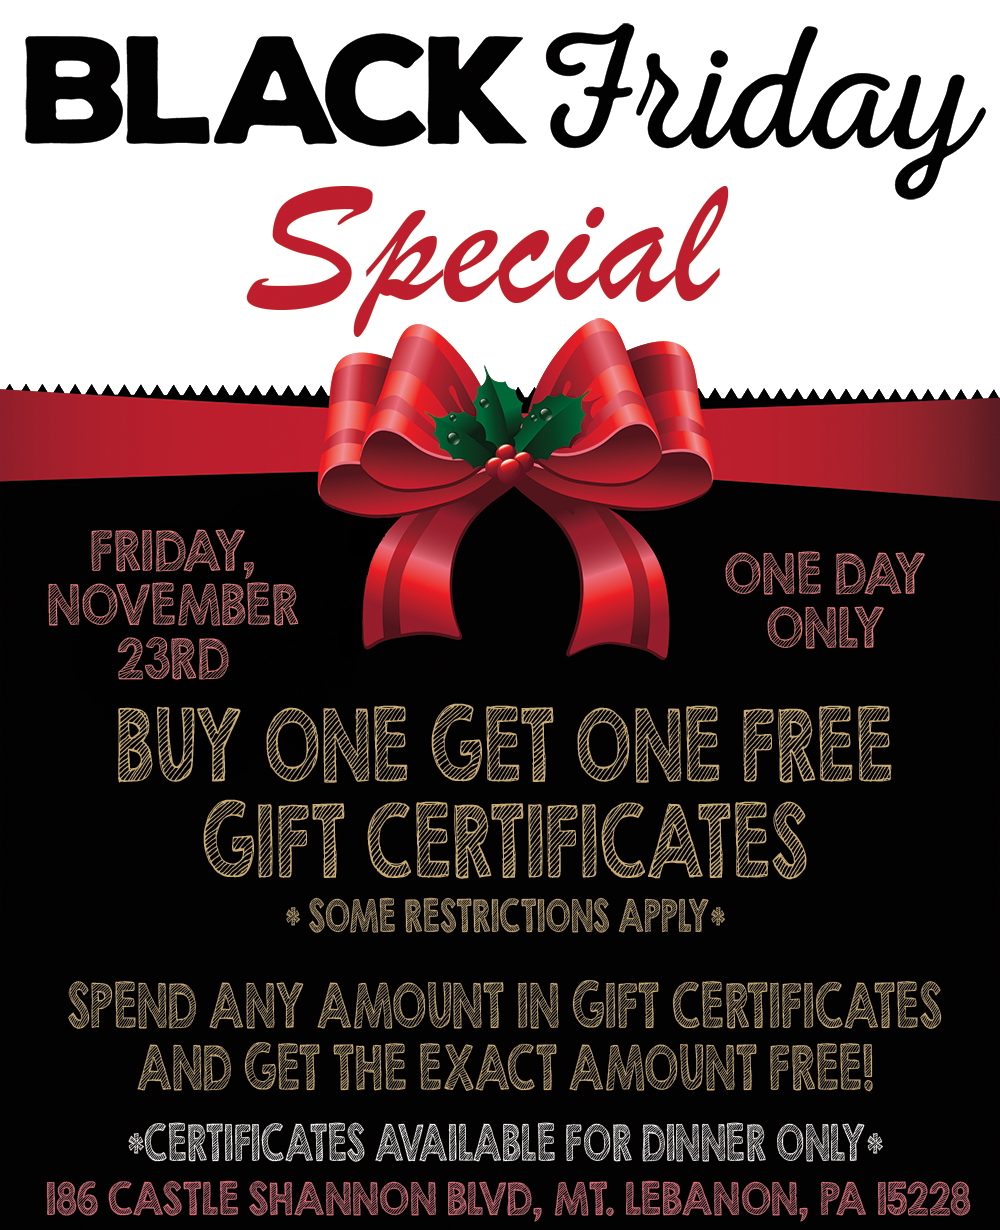 Black friday special. Friday November 23rd. One Day Only. Buy one get one free gift cerfiicates. Some restrictions apple. Spend any amount in gift certificates and get that exact amount free! Certificate for dinner only.